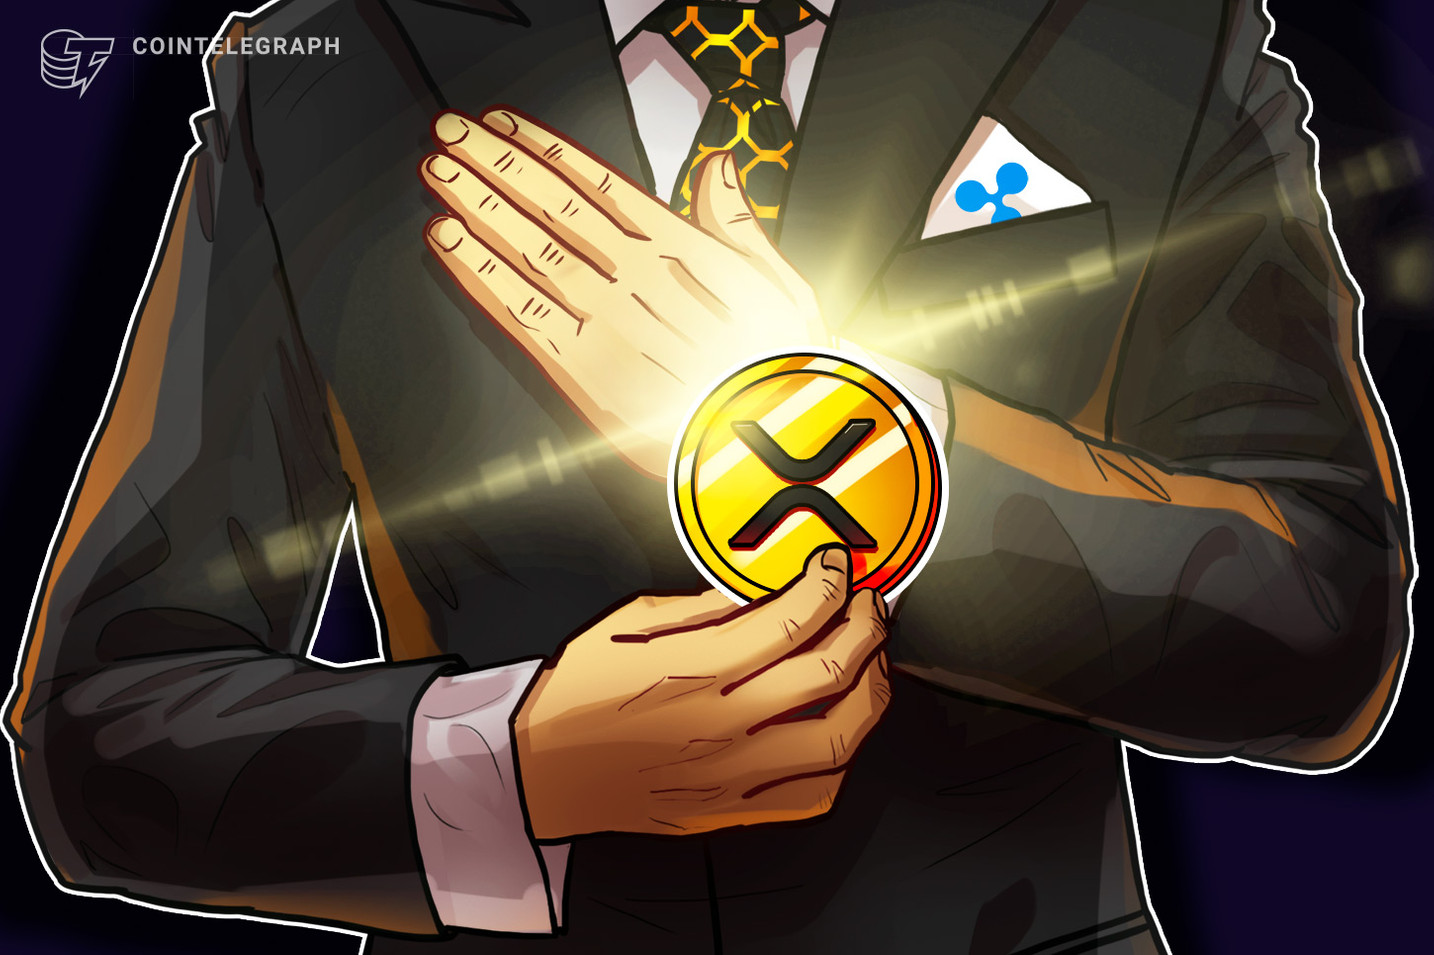 XRP Ledger Foundation bekommt 6,5 Mio. US-Dollar Investitionskapital